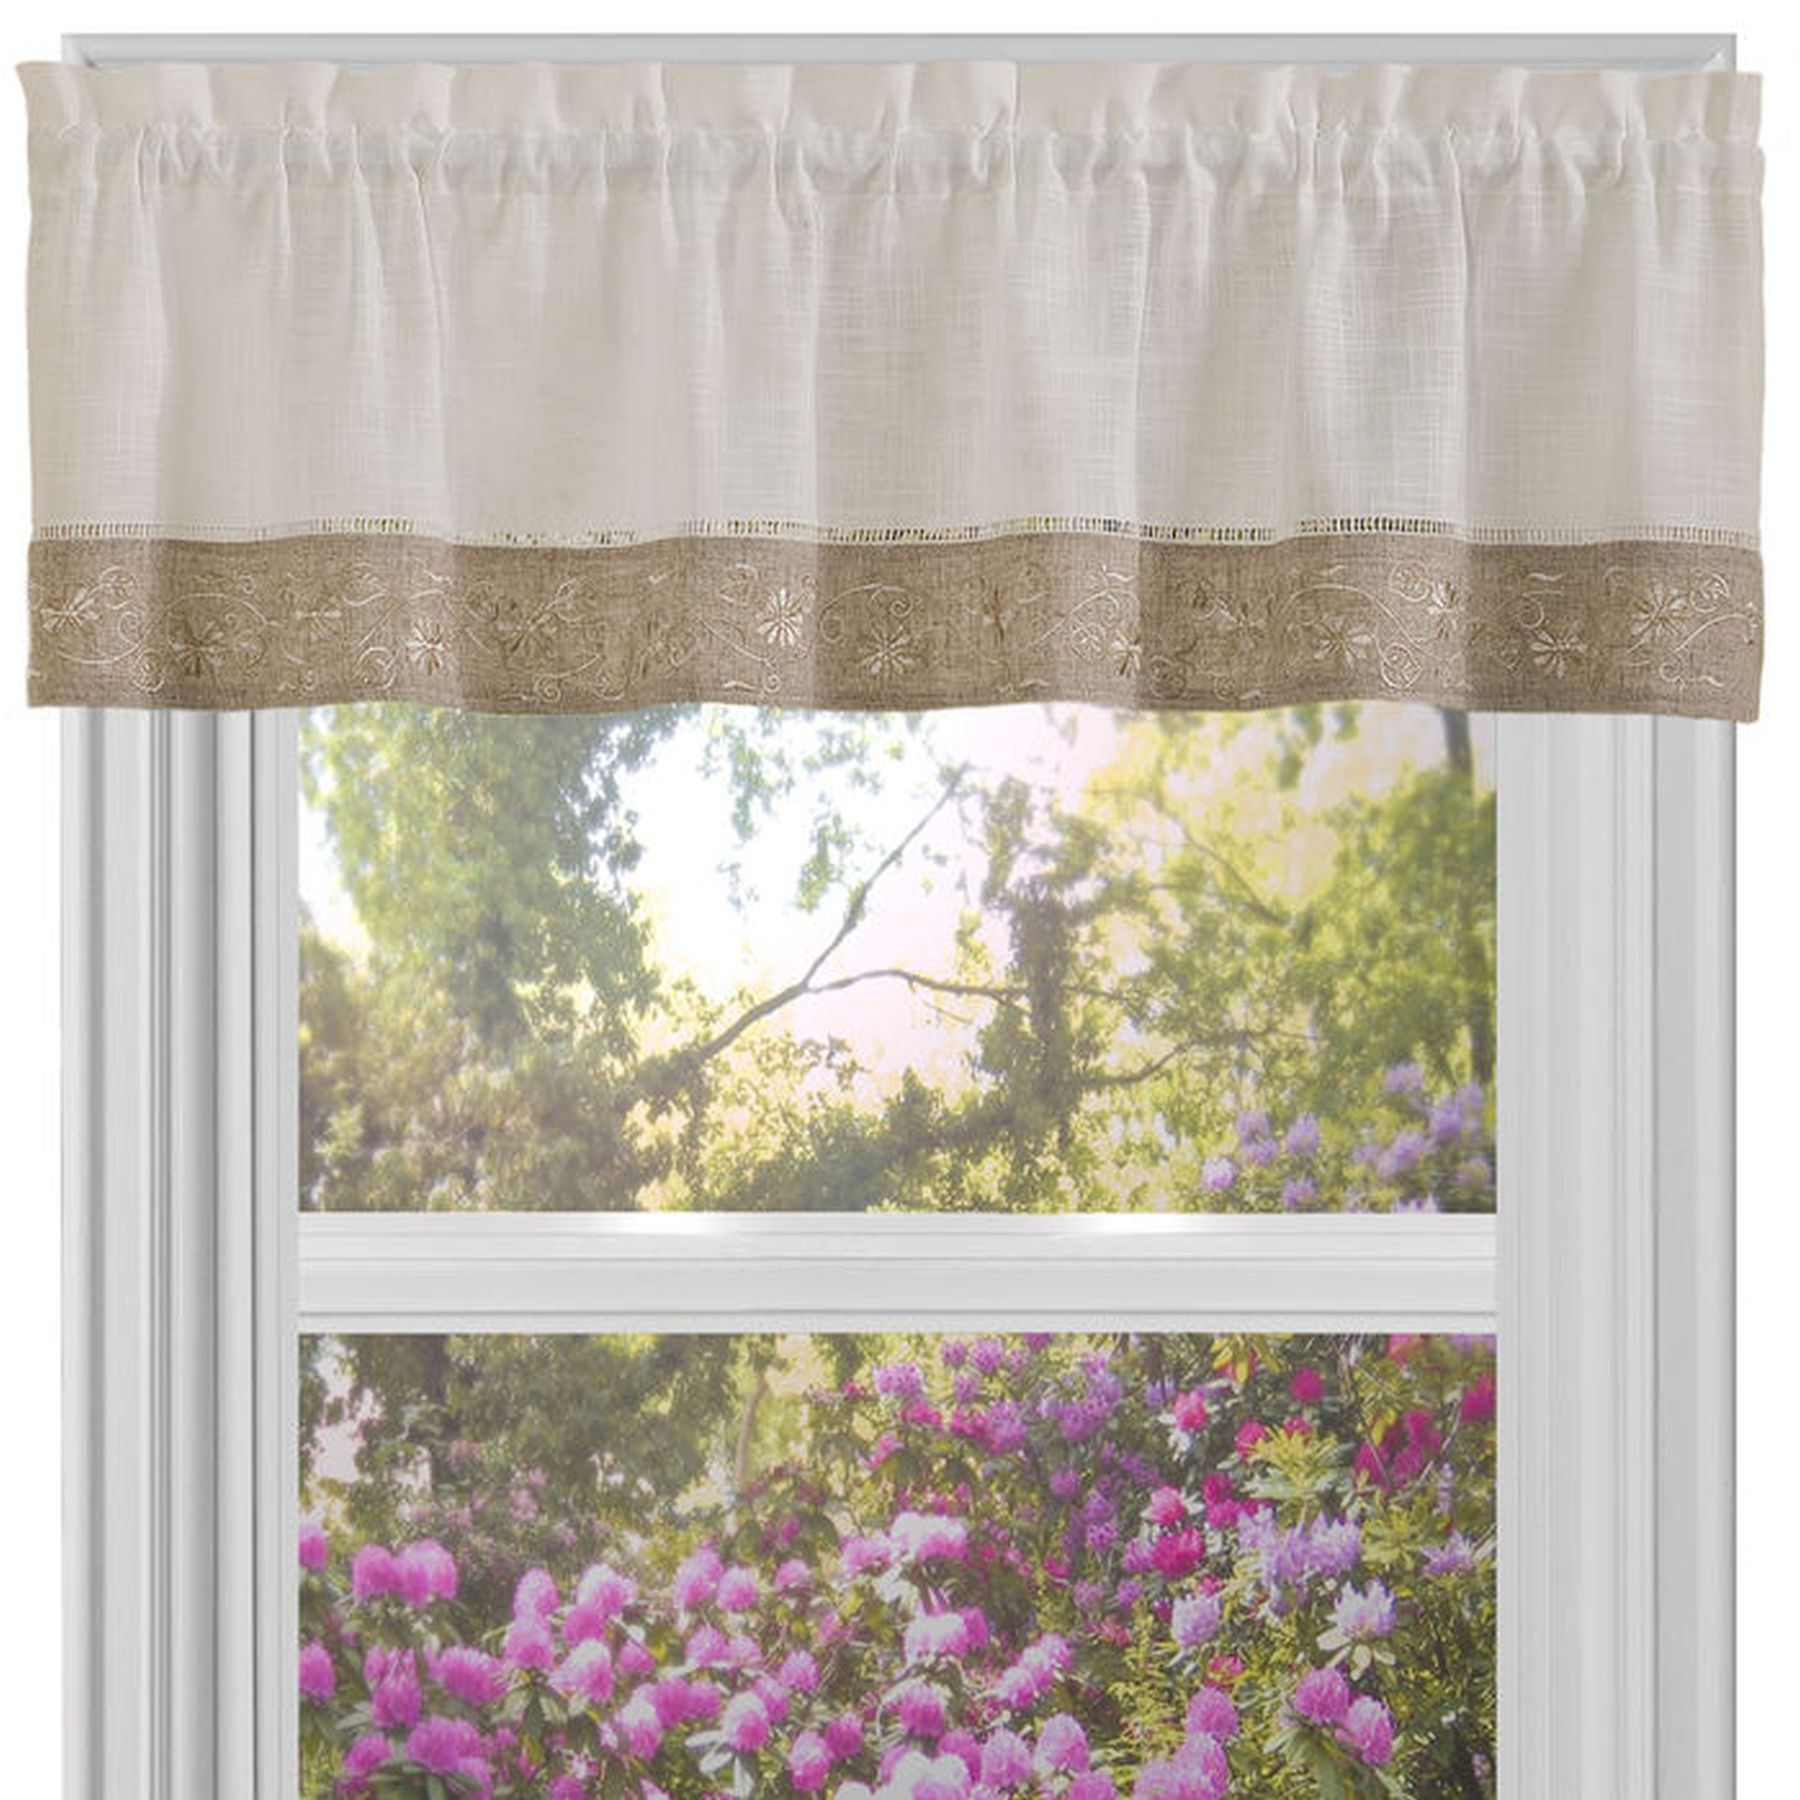 Favorite Traditional Elegance Oakwood 58X14 Window Curtain Valance – Natural For Oakwood Linen Style Decorative Curtain Tier Sets (View 8 of 20)